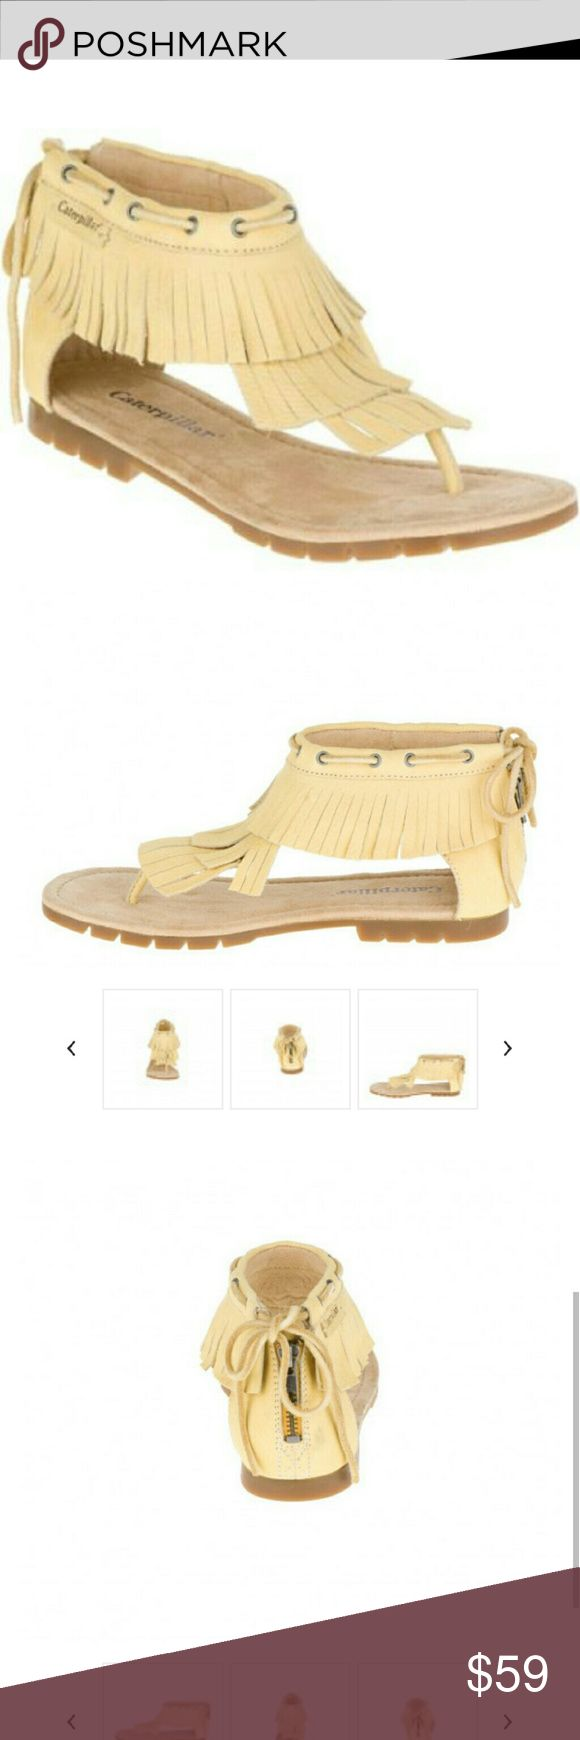 Caterpillar leather fringe sandals NWT, super comfortable and sexy! Tts. Caterpillar Shoes Sandals